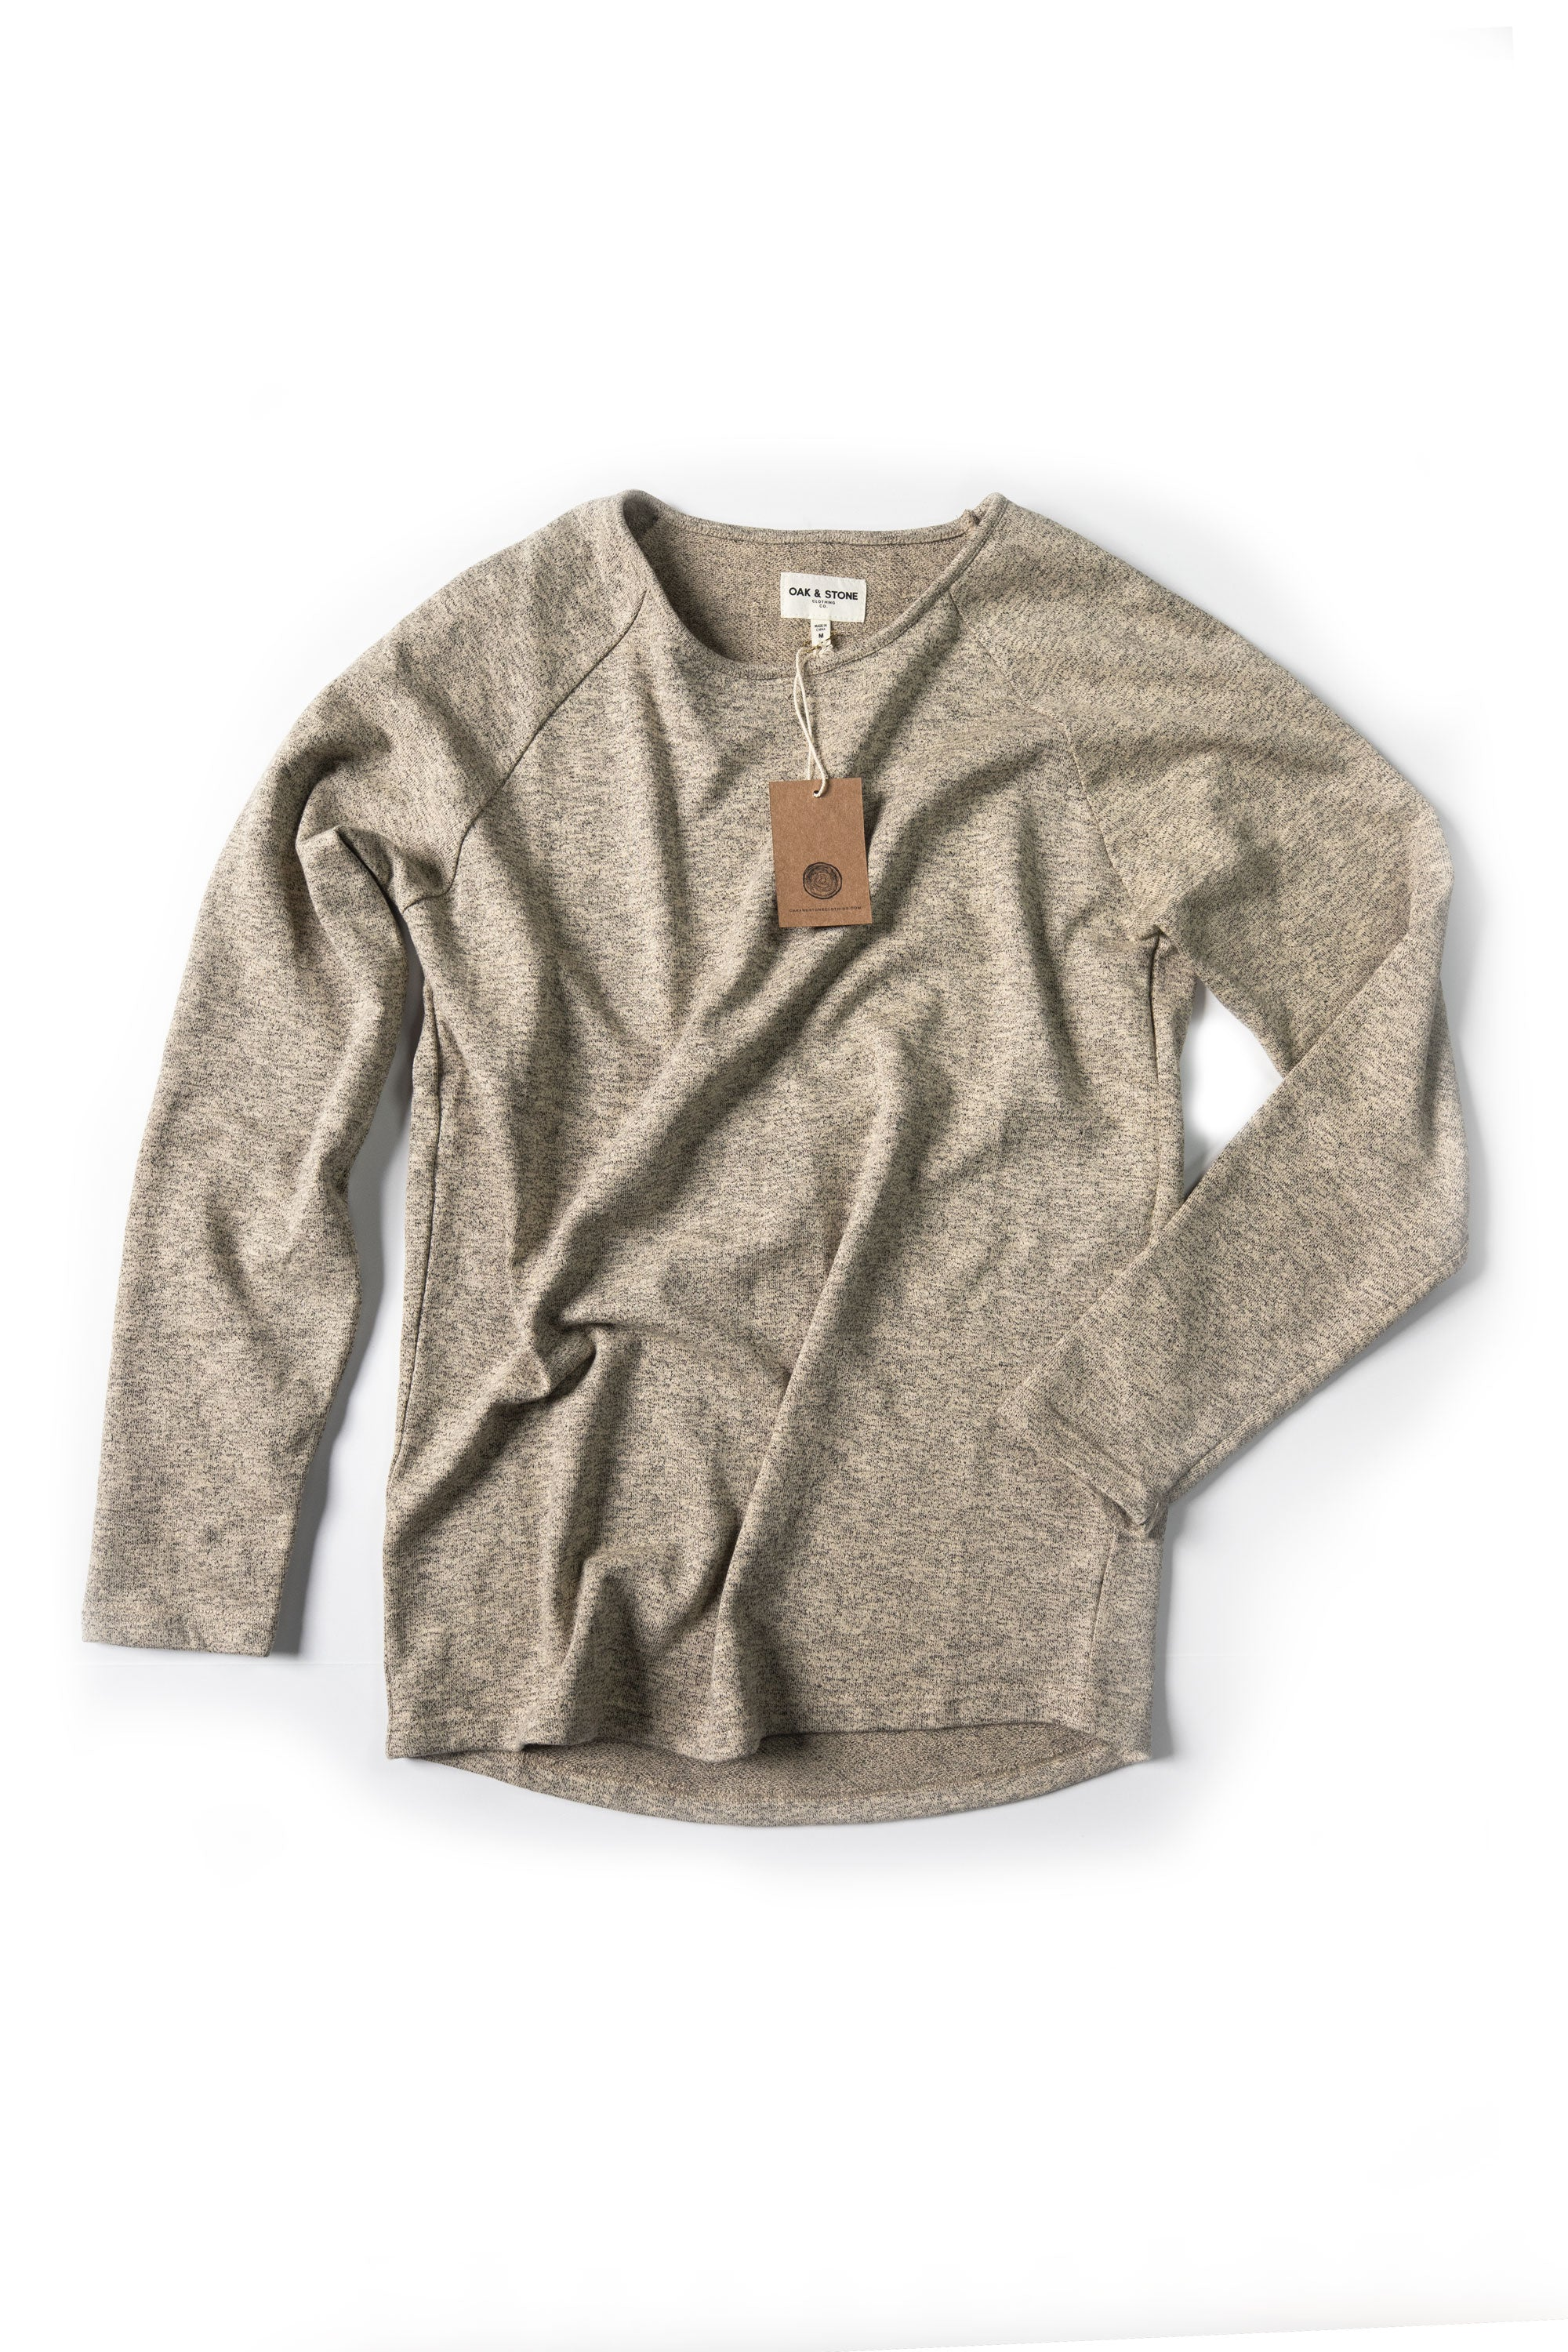 Terry Sweater - Heathered Tan - Oak & Stone Clothing Co.